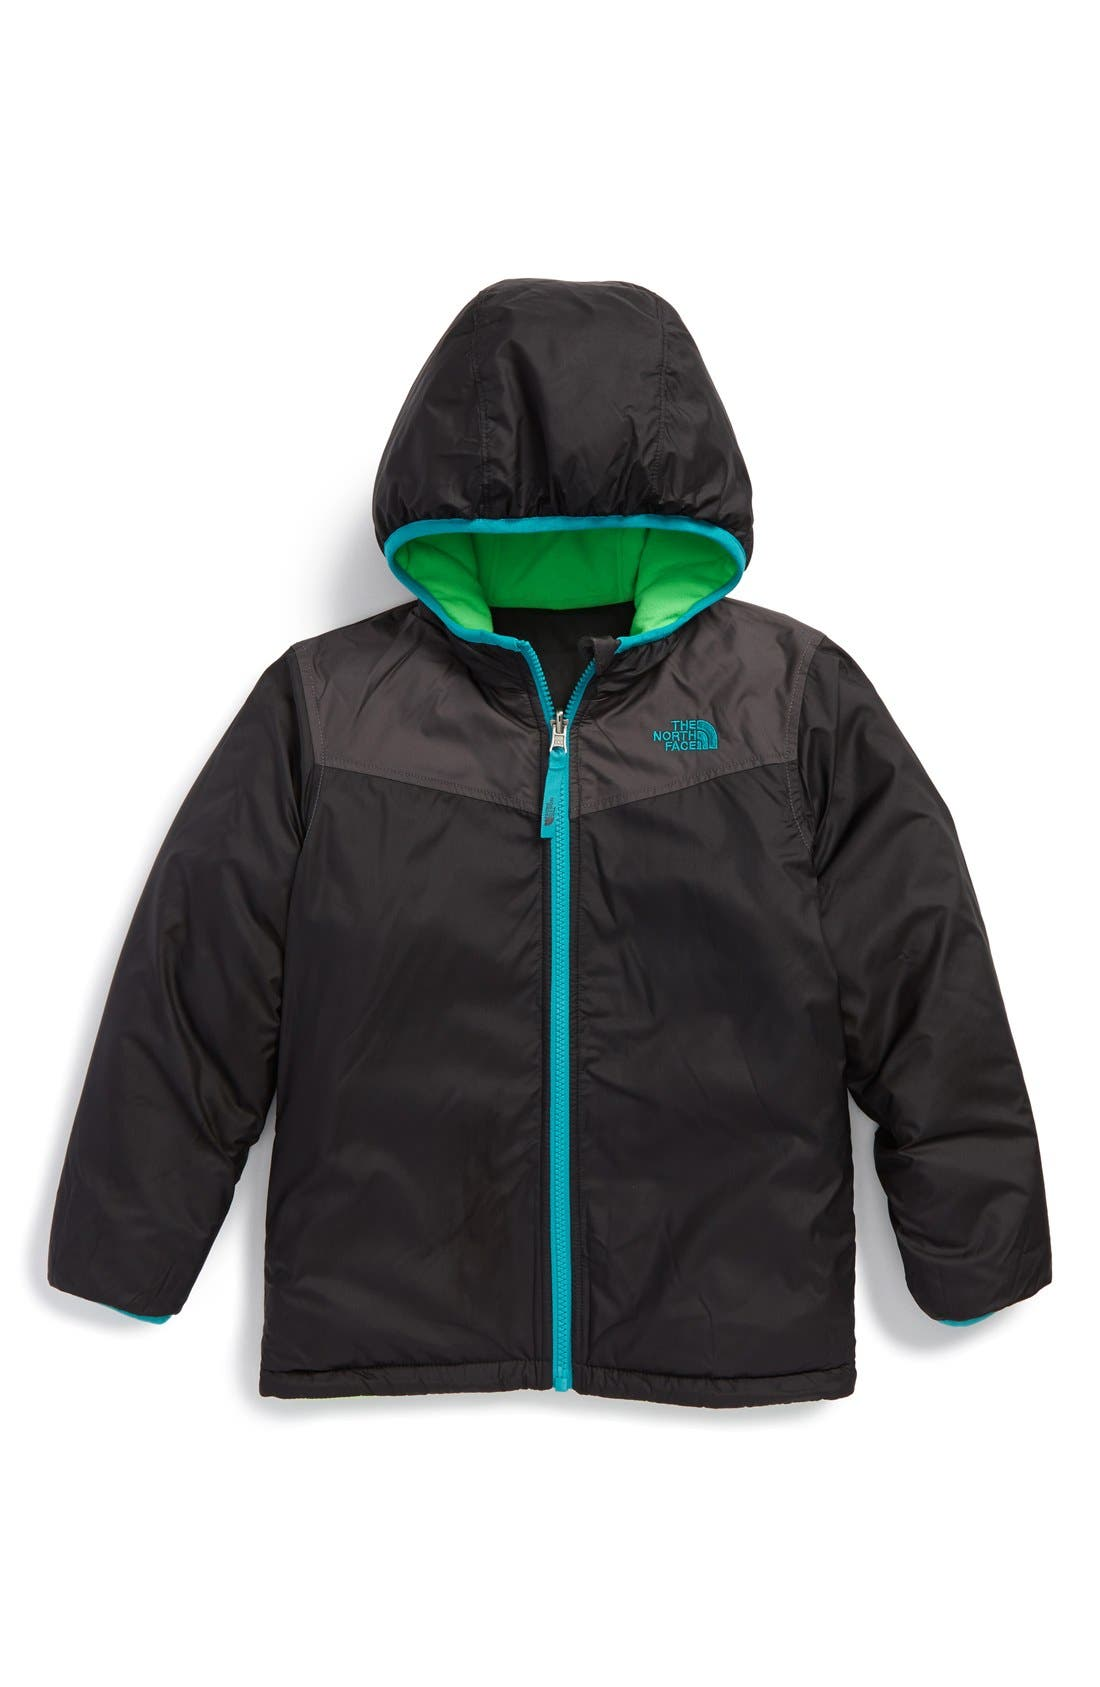 Alternate Image 2  - The North Face 'True or False' Reversible Water Resistant Jacket (Toddler Boys & Little Boys)